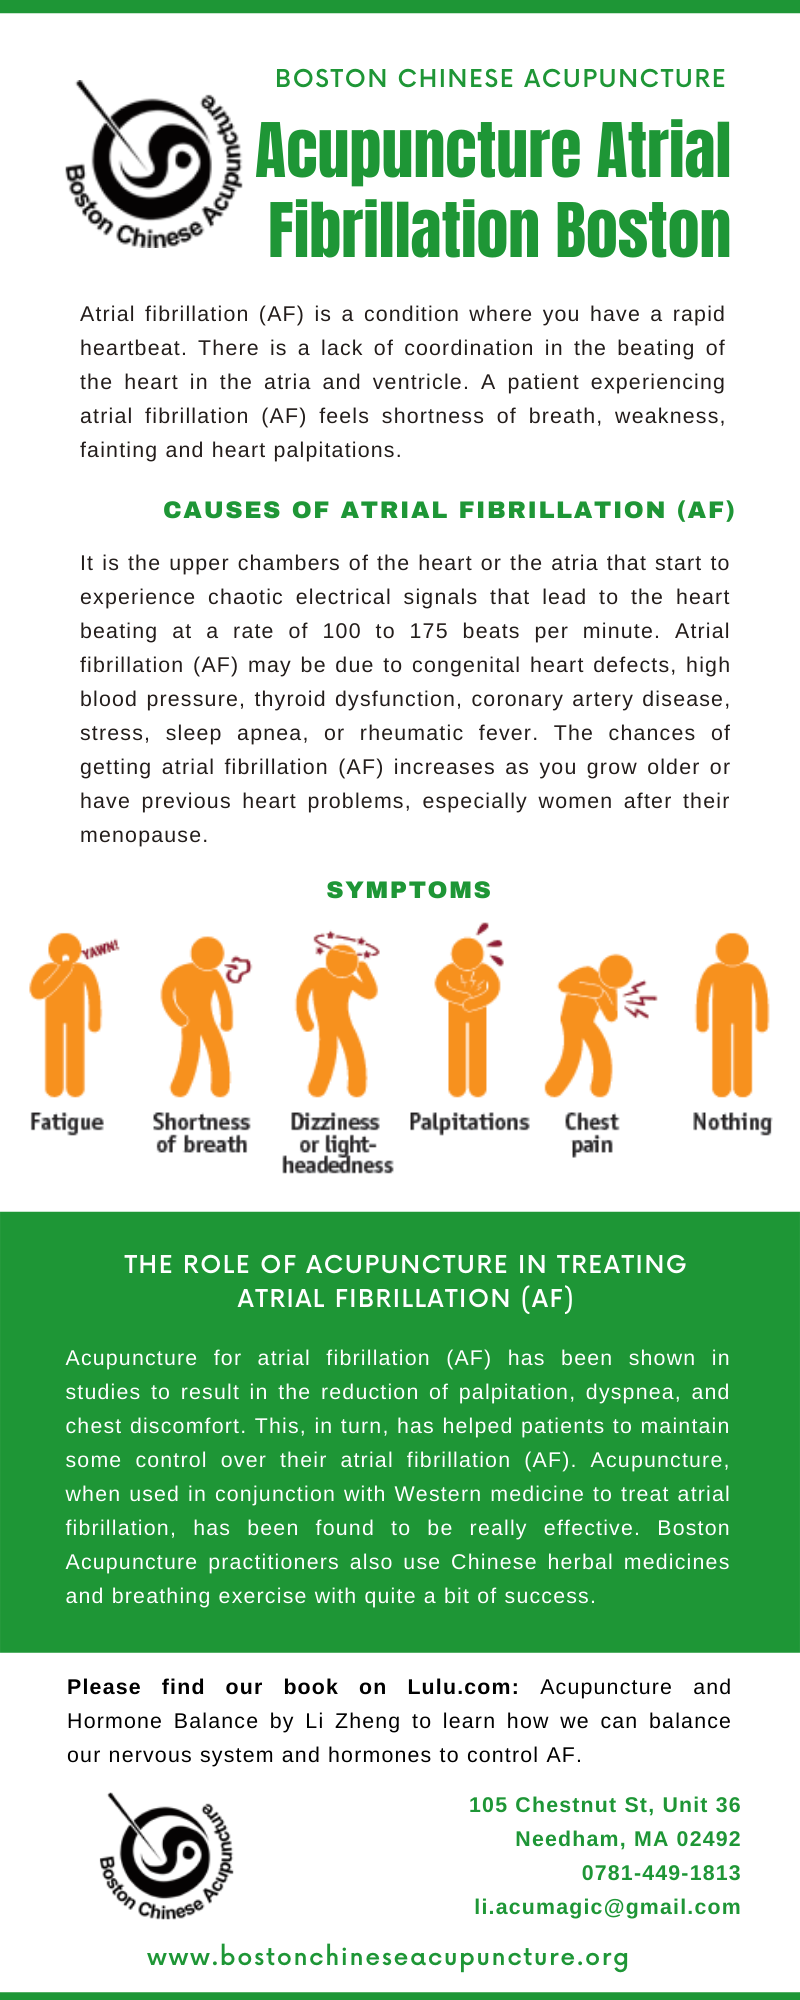 Acupuncture Atrial Fibrillation